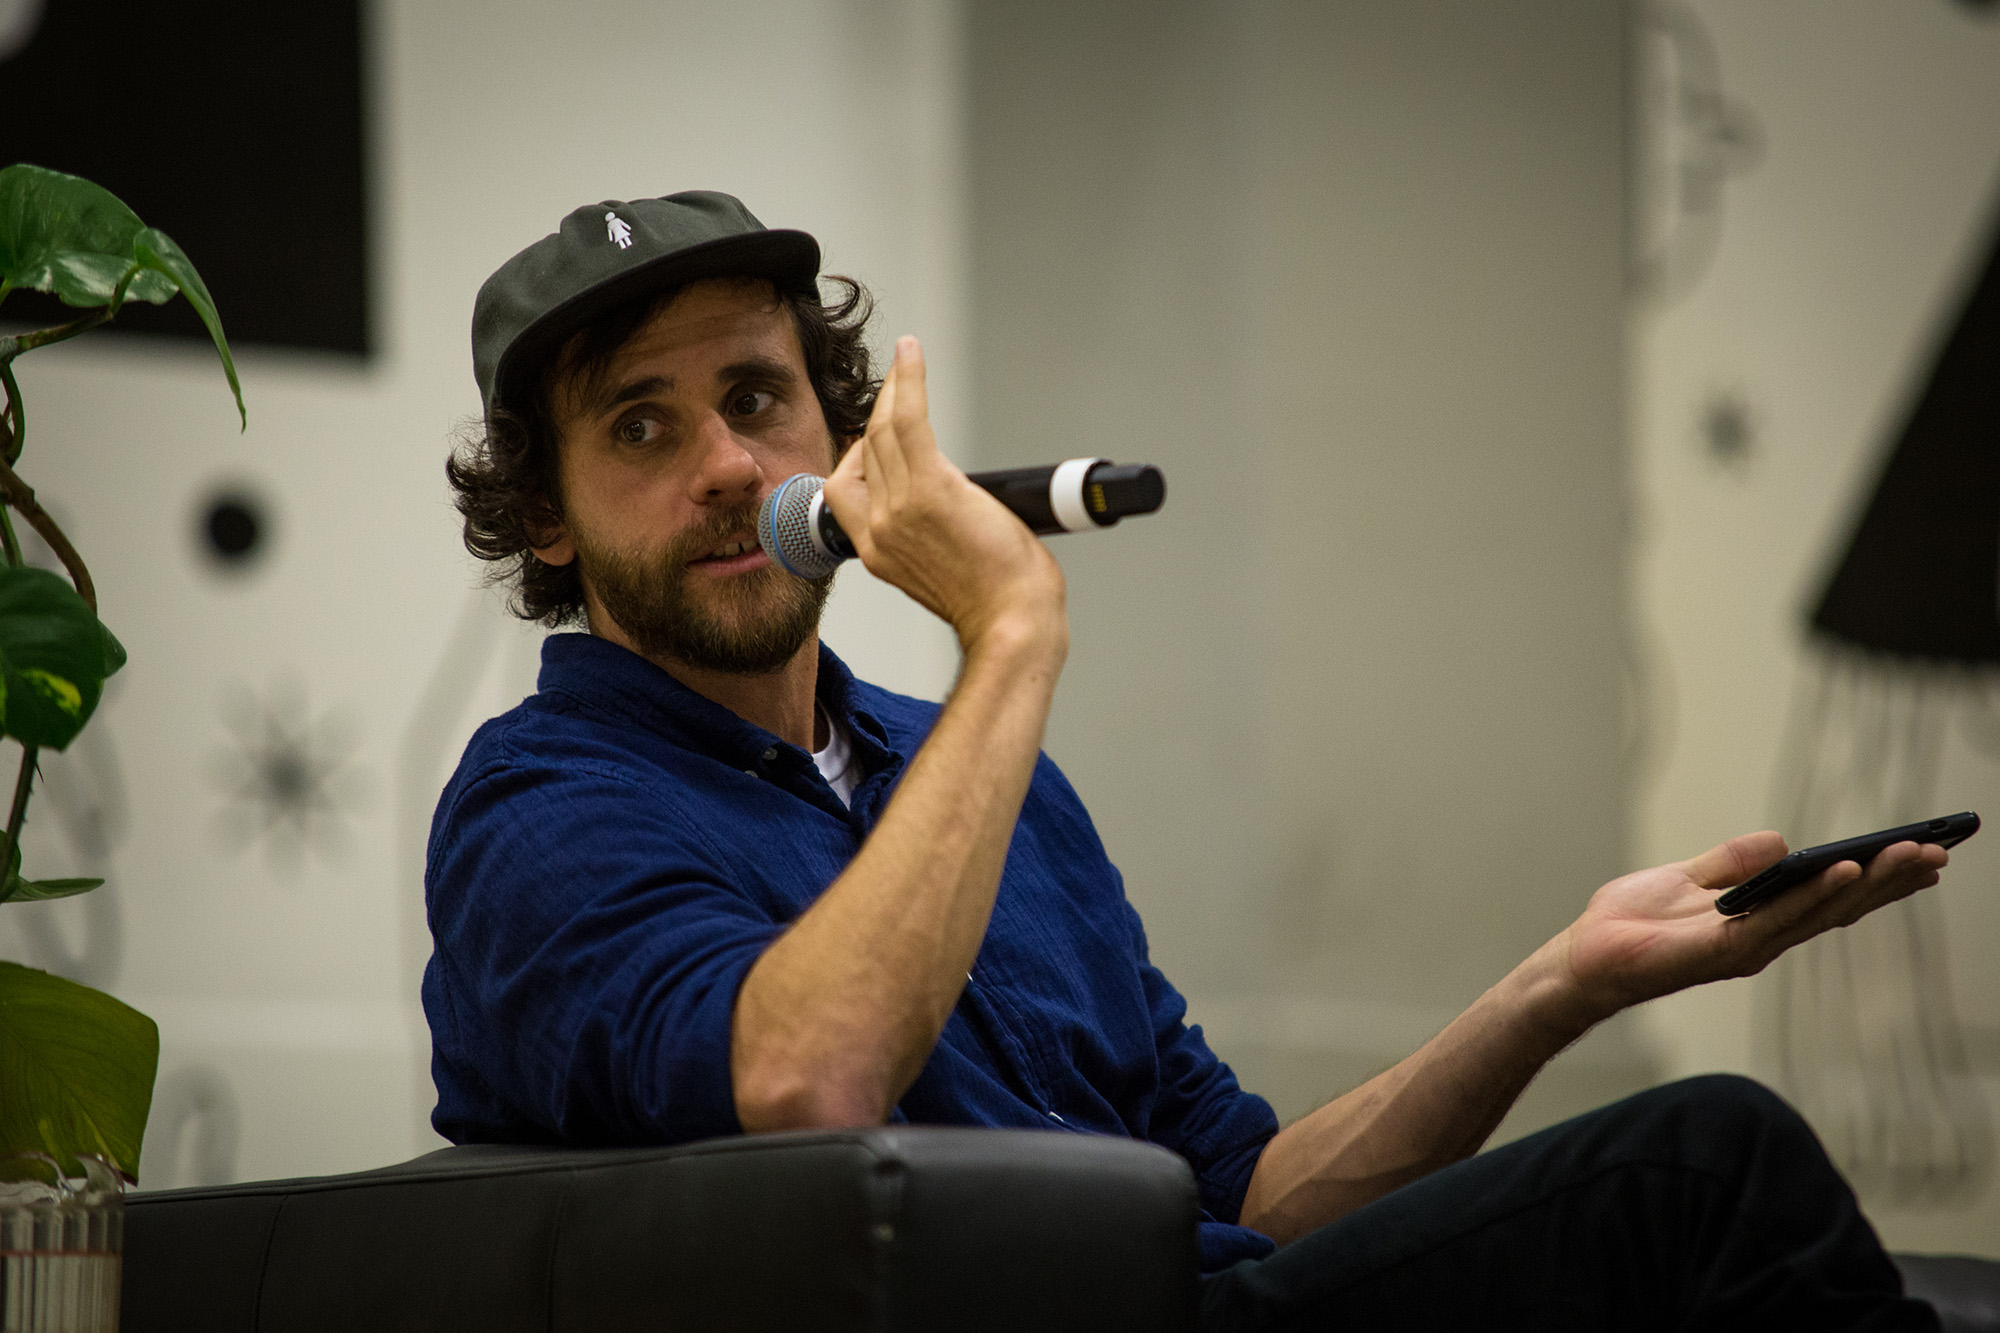 Chair of the 'Skate & Educate' panel, Rick McCrank. Photo: Emil Agerskov